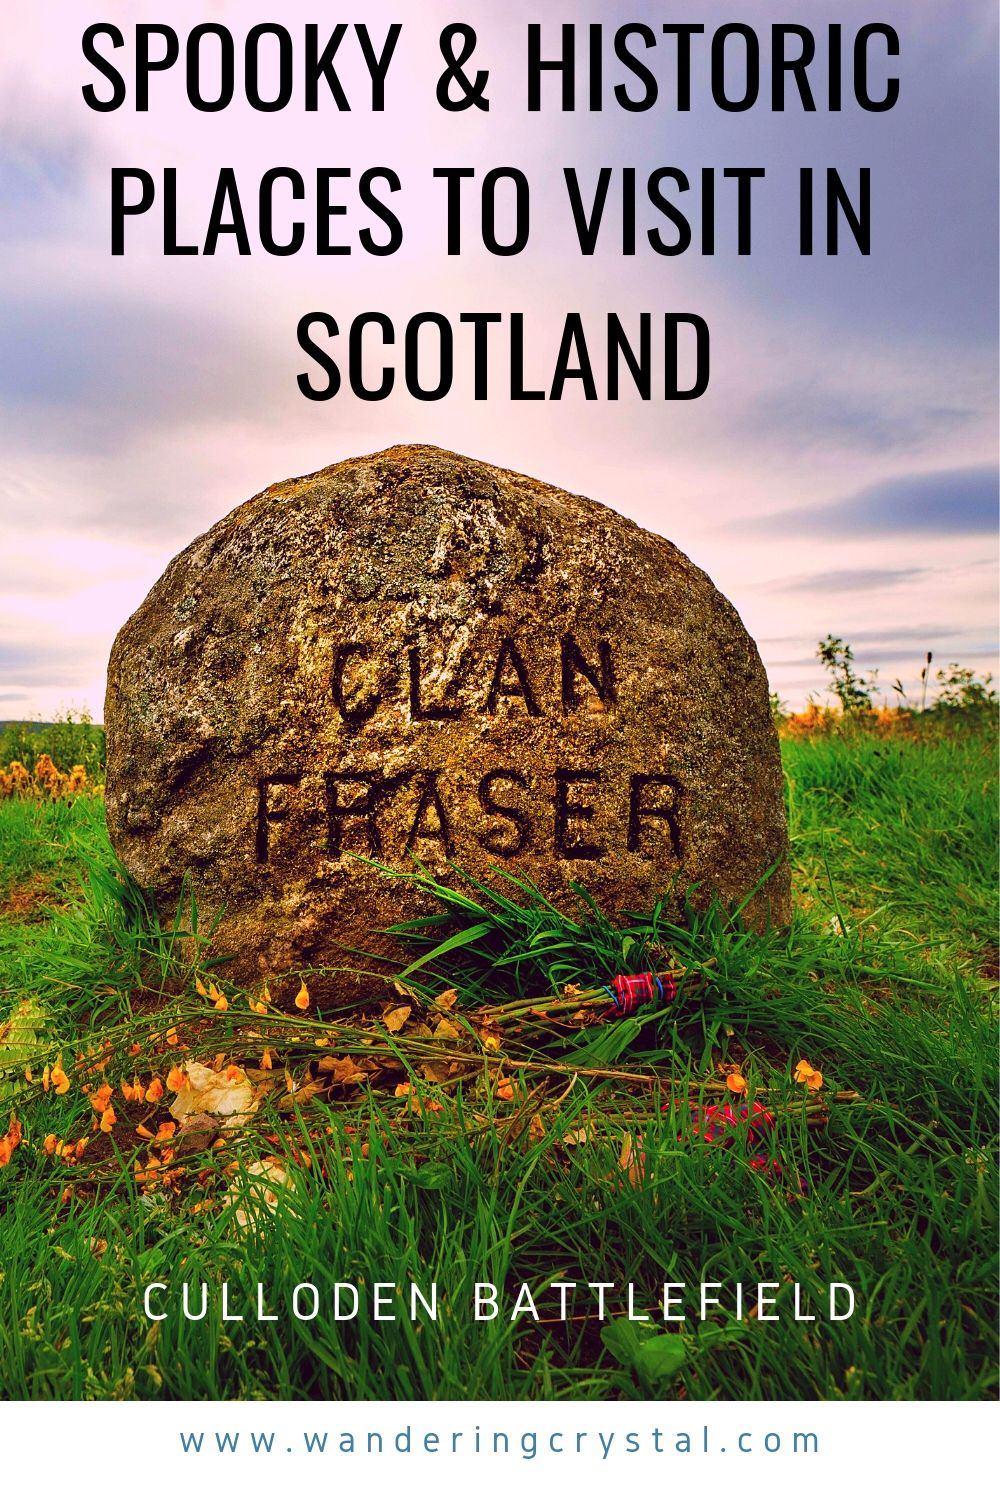 Culloden Battlefield - 10 Spooky and Historic Sites to See in Scotland #travelscotland